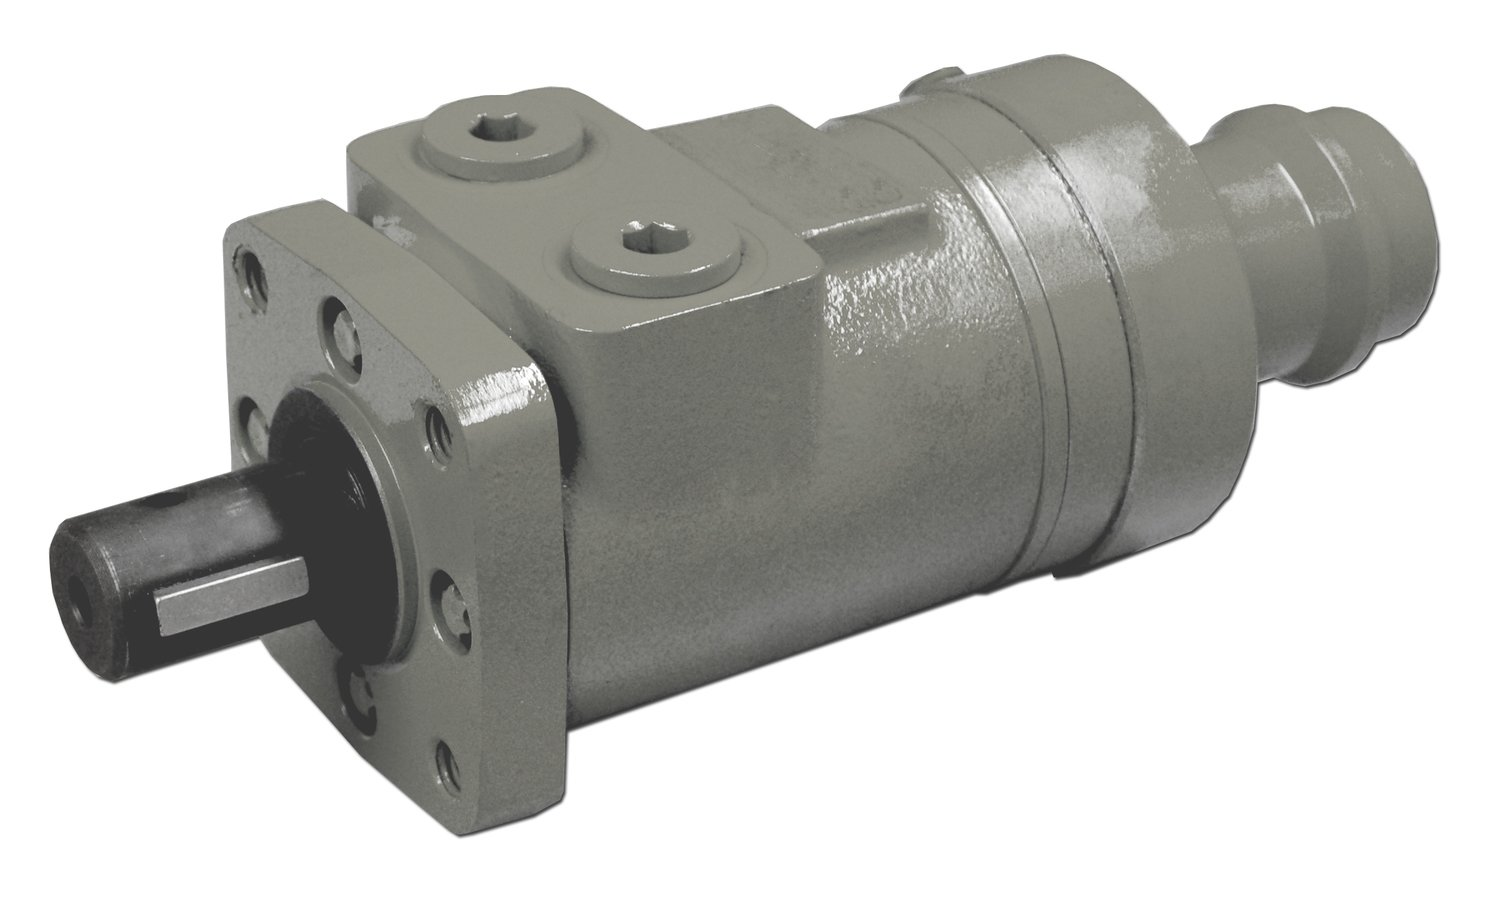 Mainline Motor W/ Tail Nozzle Thruster